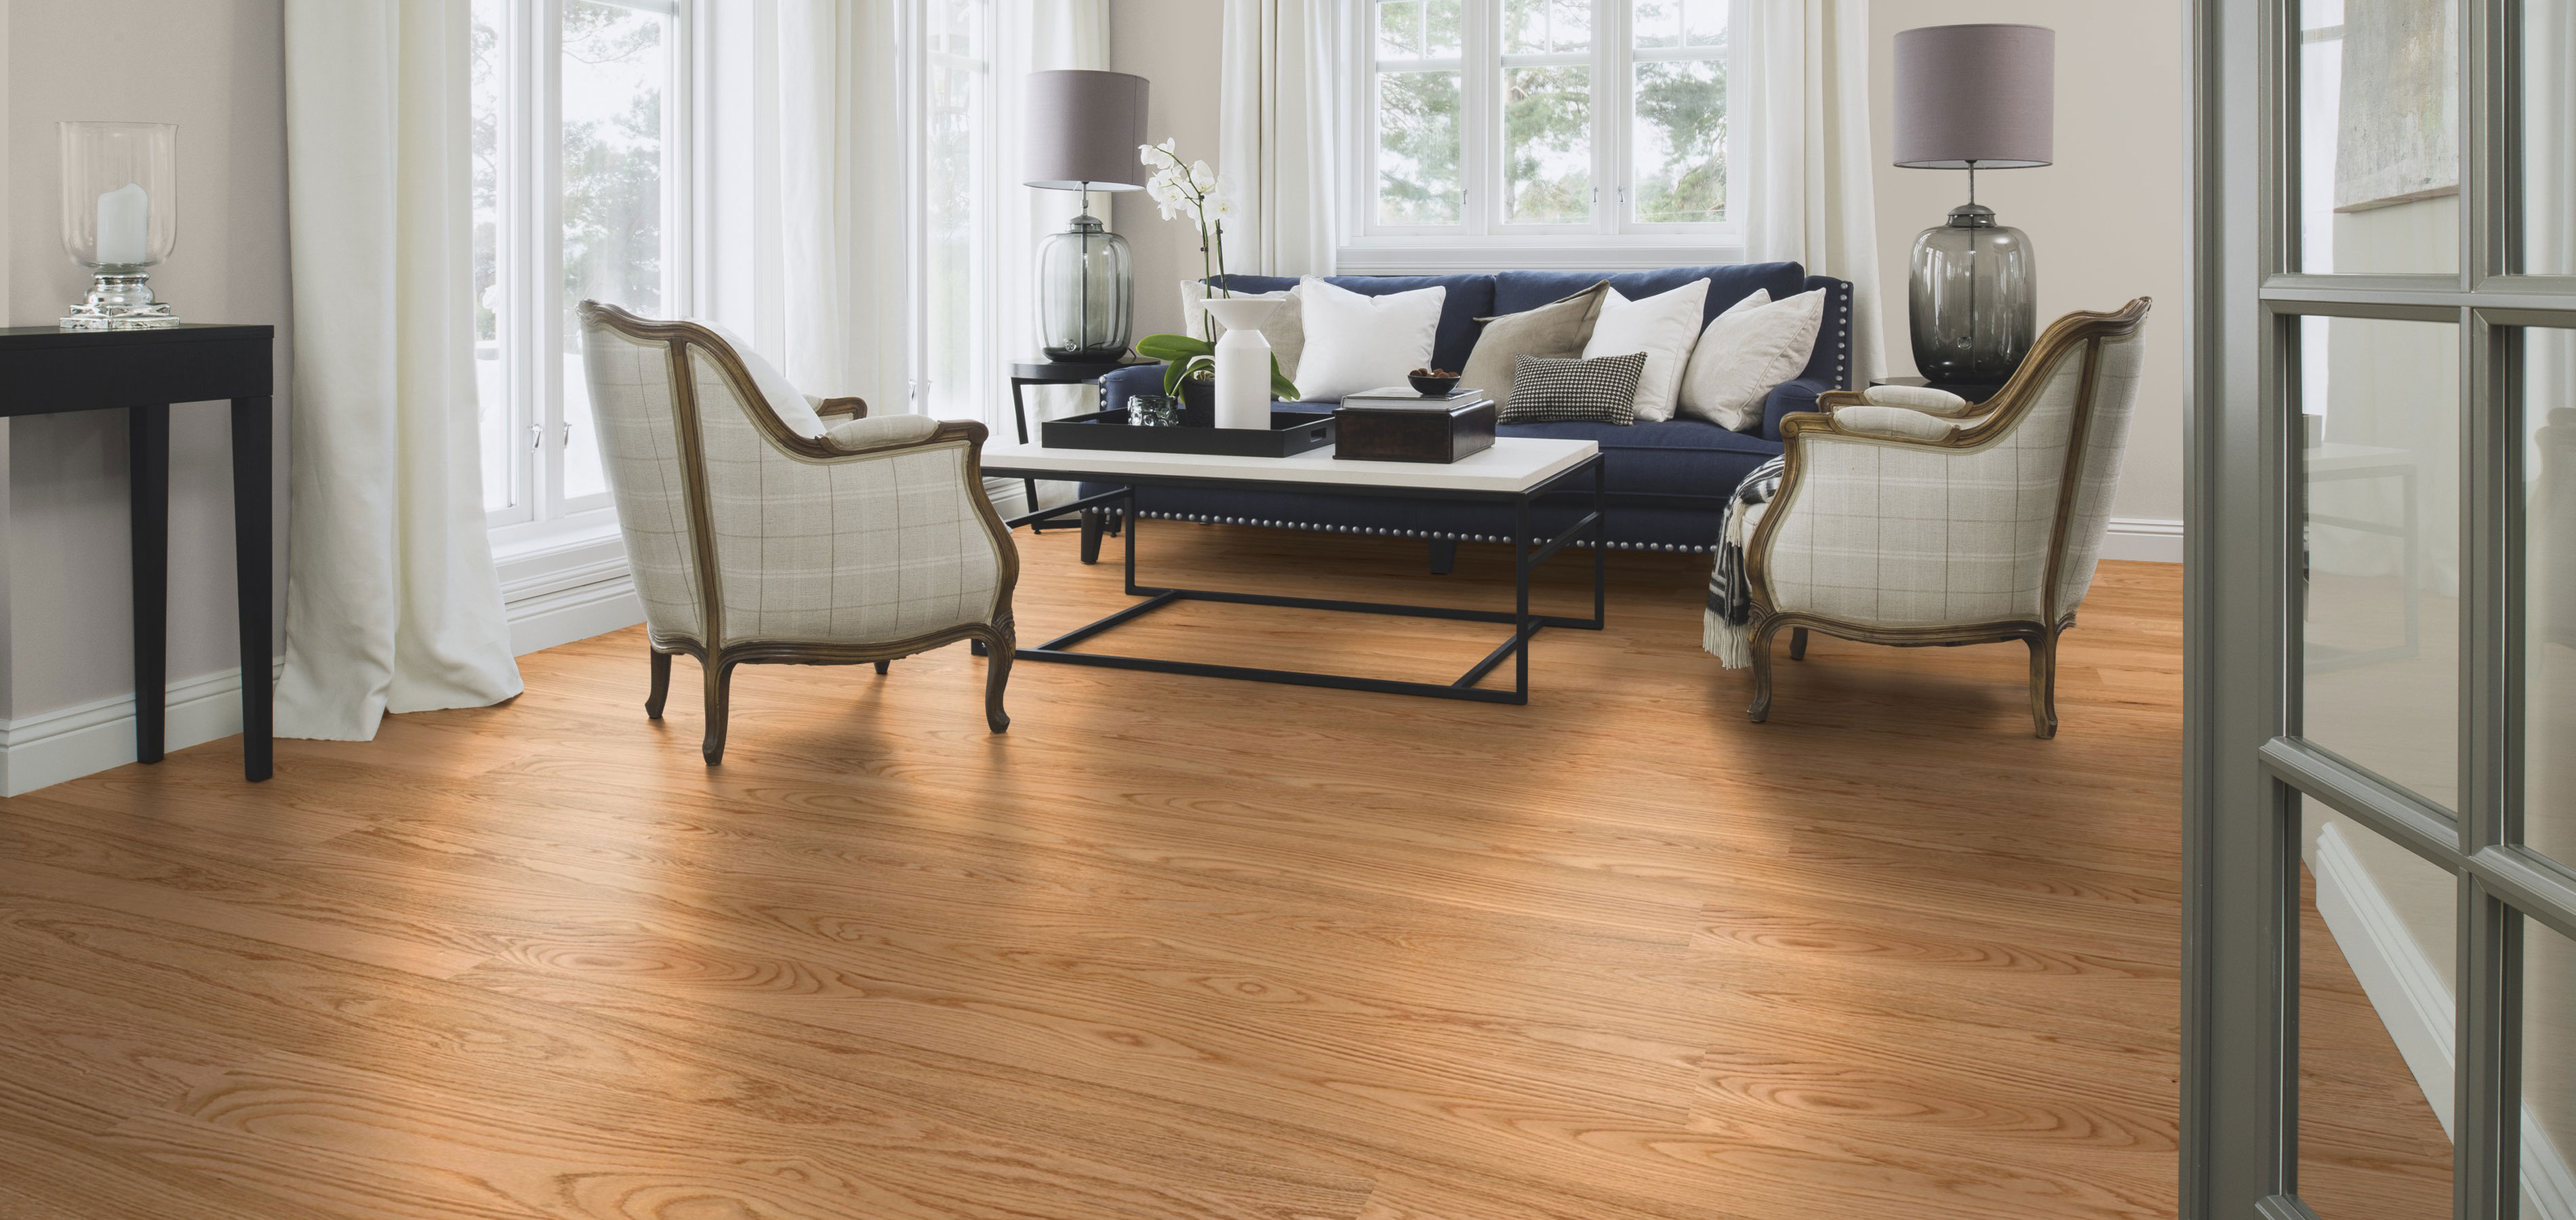 Boen Flooring Red Oak Plank 1